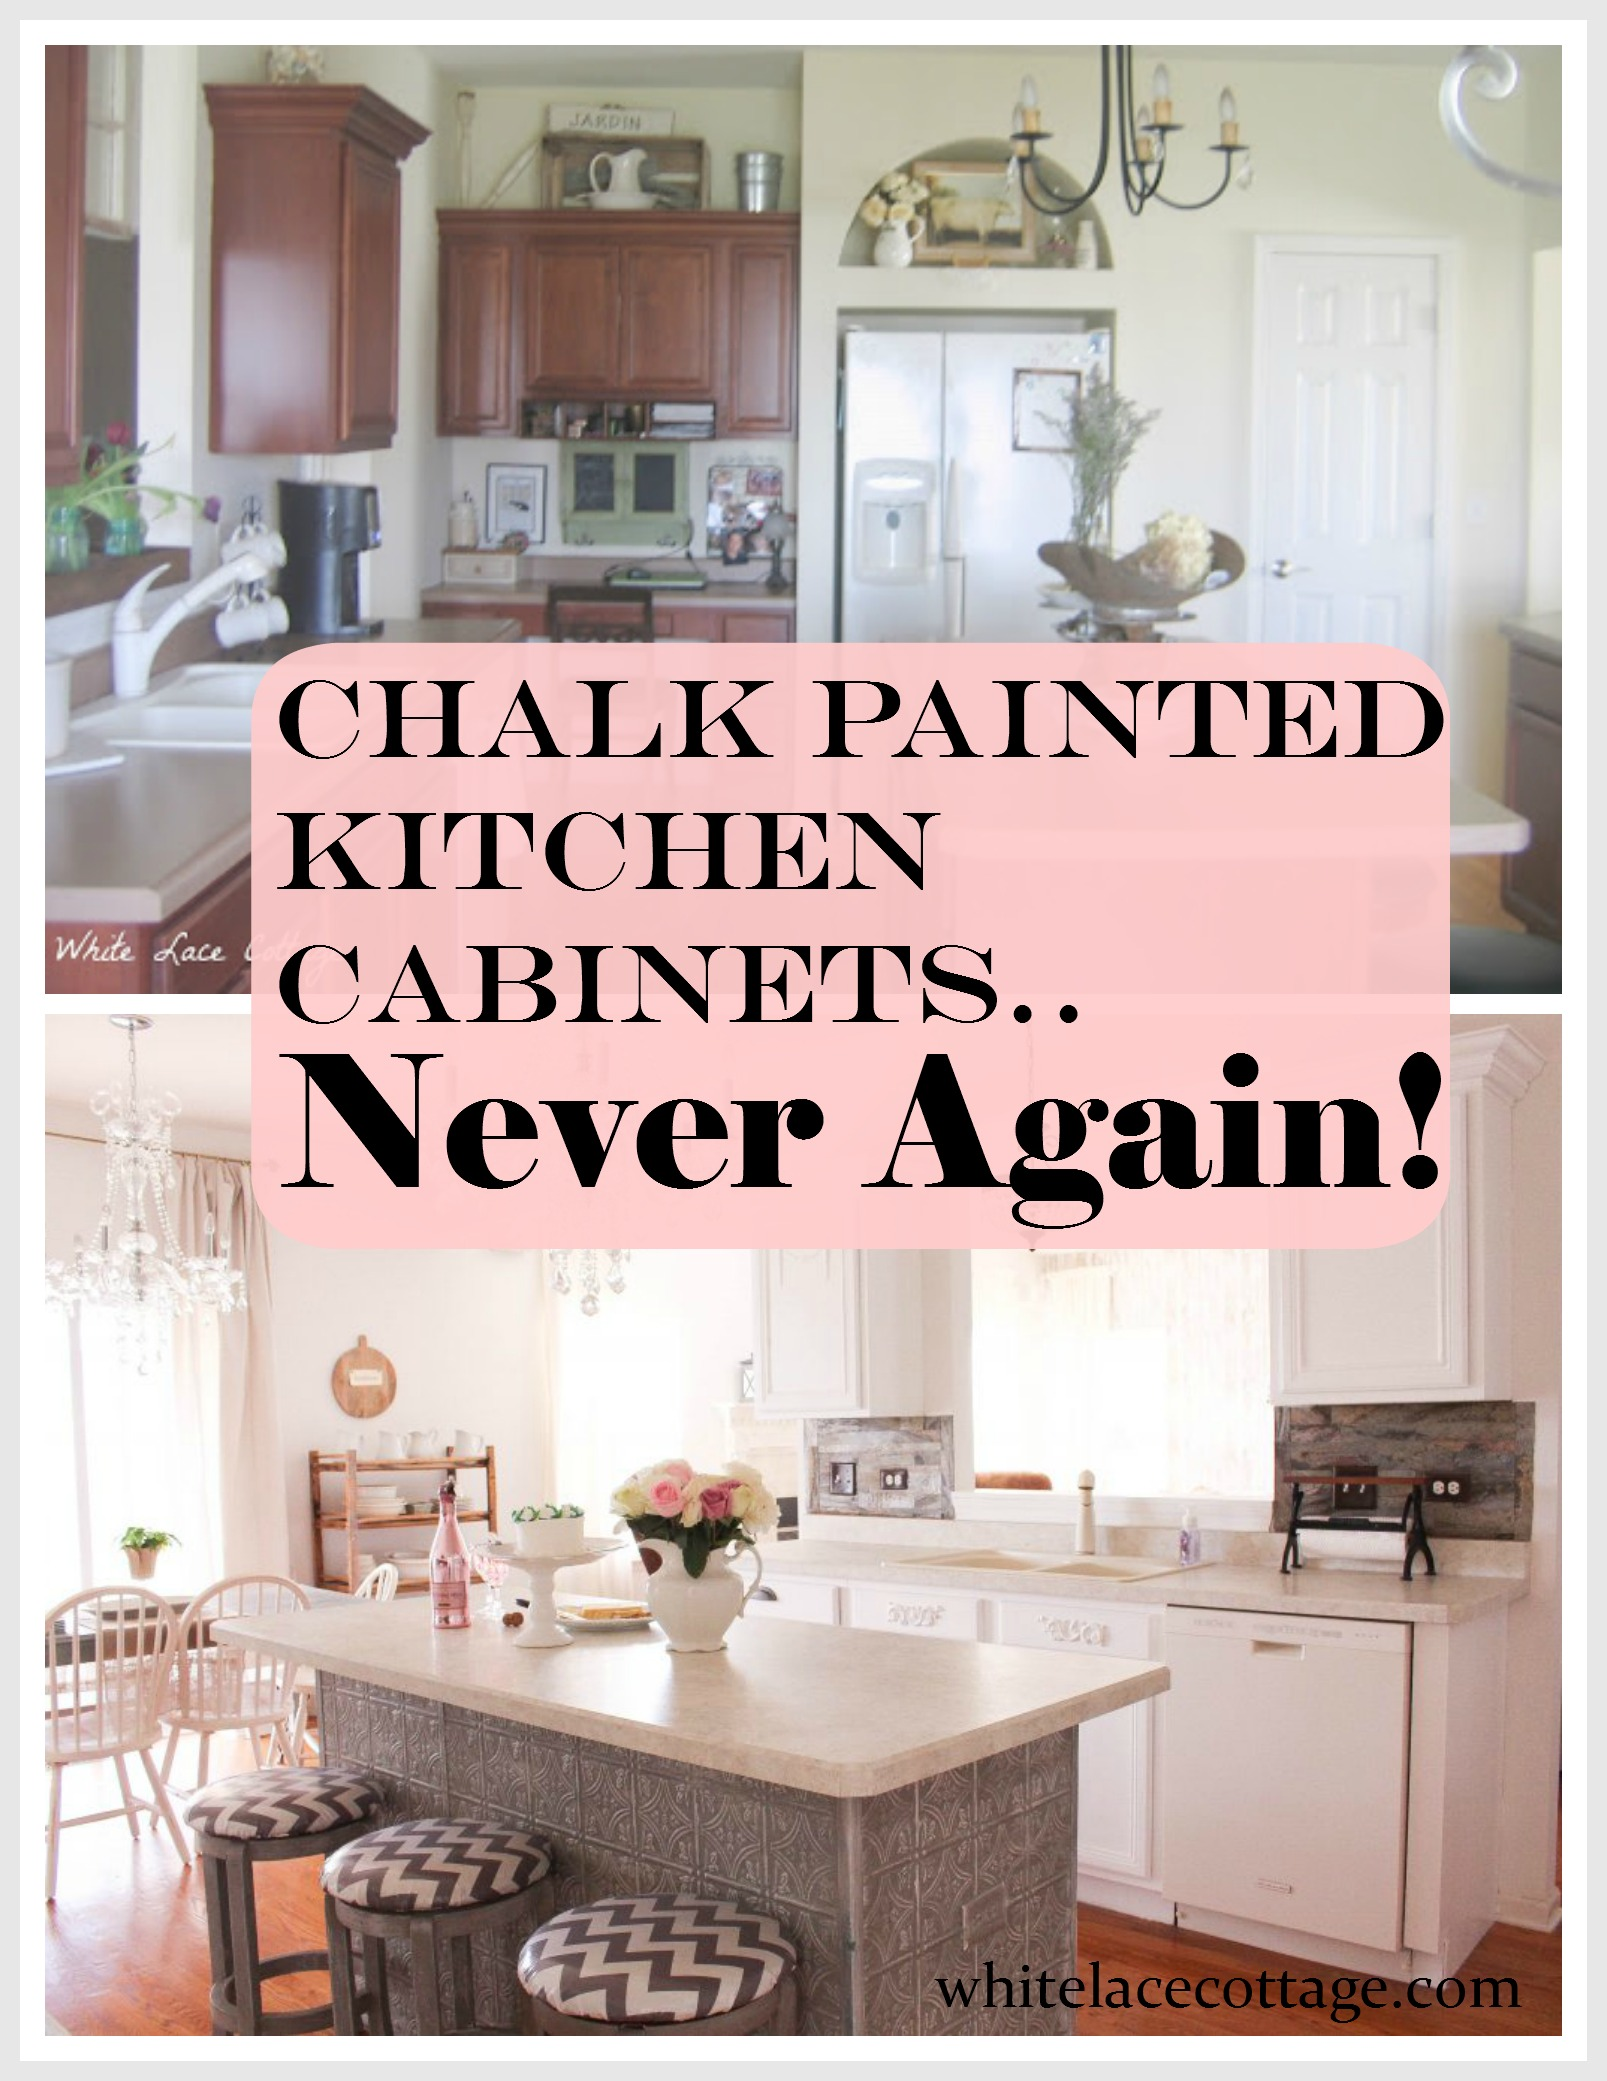 Chalk painted kitchen cabinets never again white lace for Can i paint kitchen cabinets with chalk paint